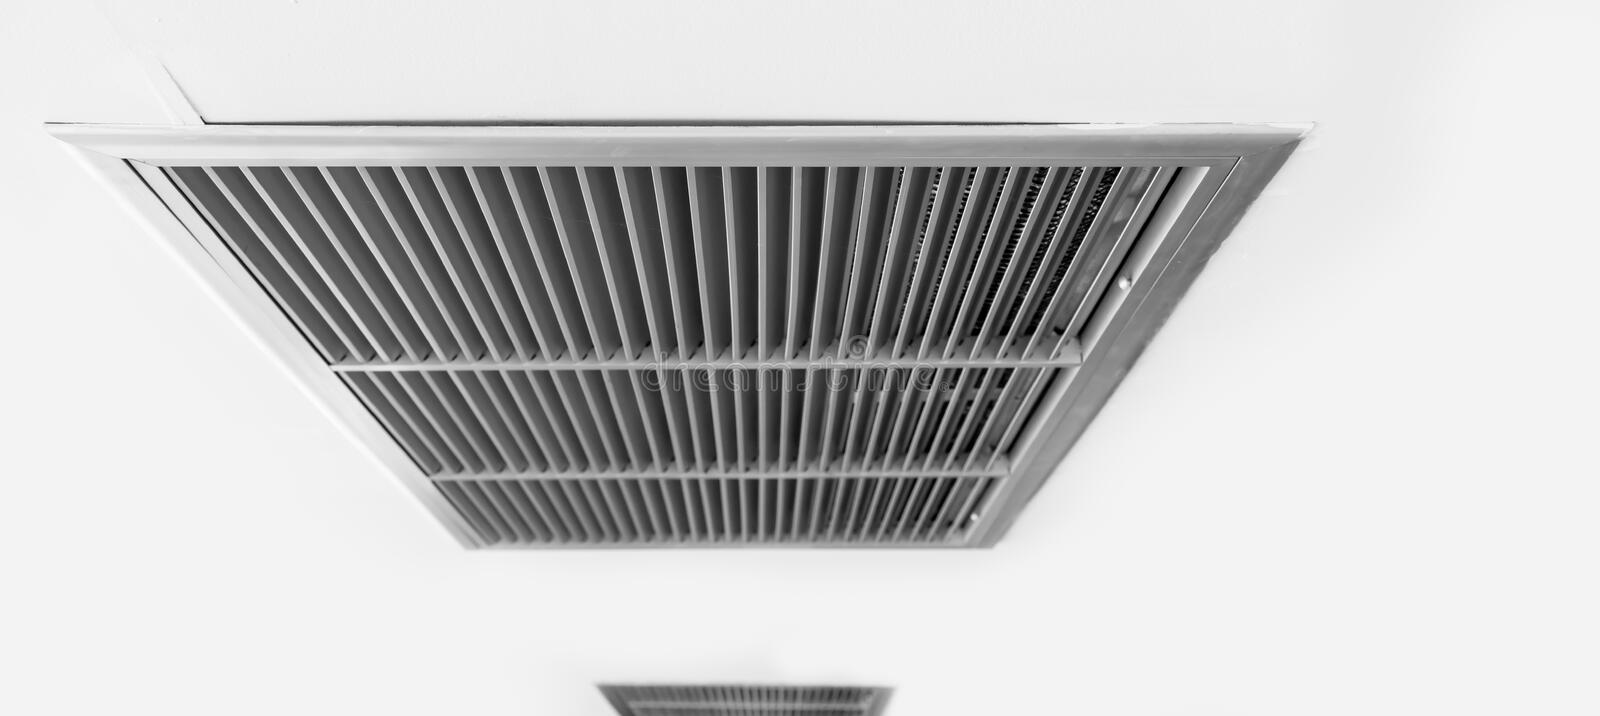 Air ventilator ,metal slat frame on white. Ceiling royalty free stock photos